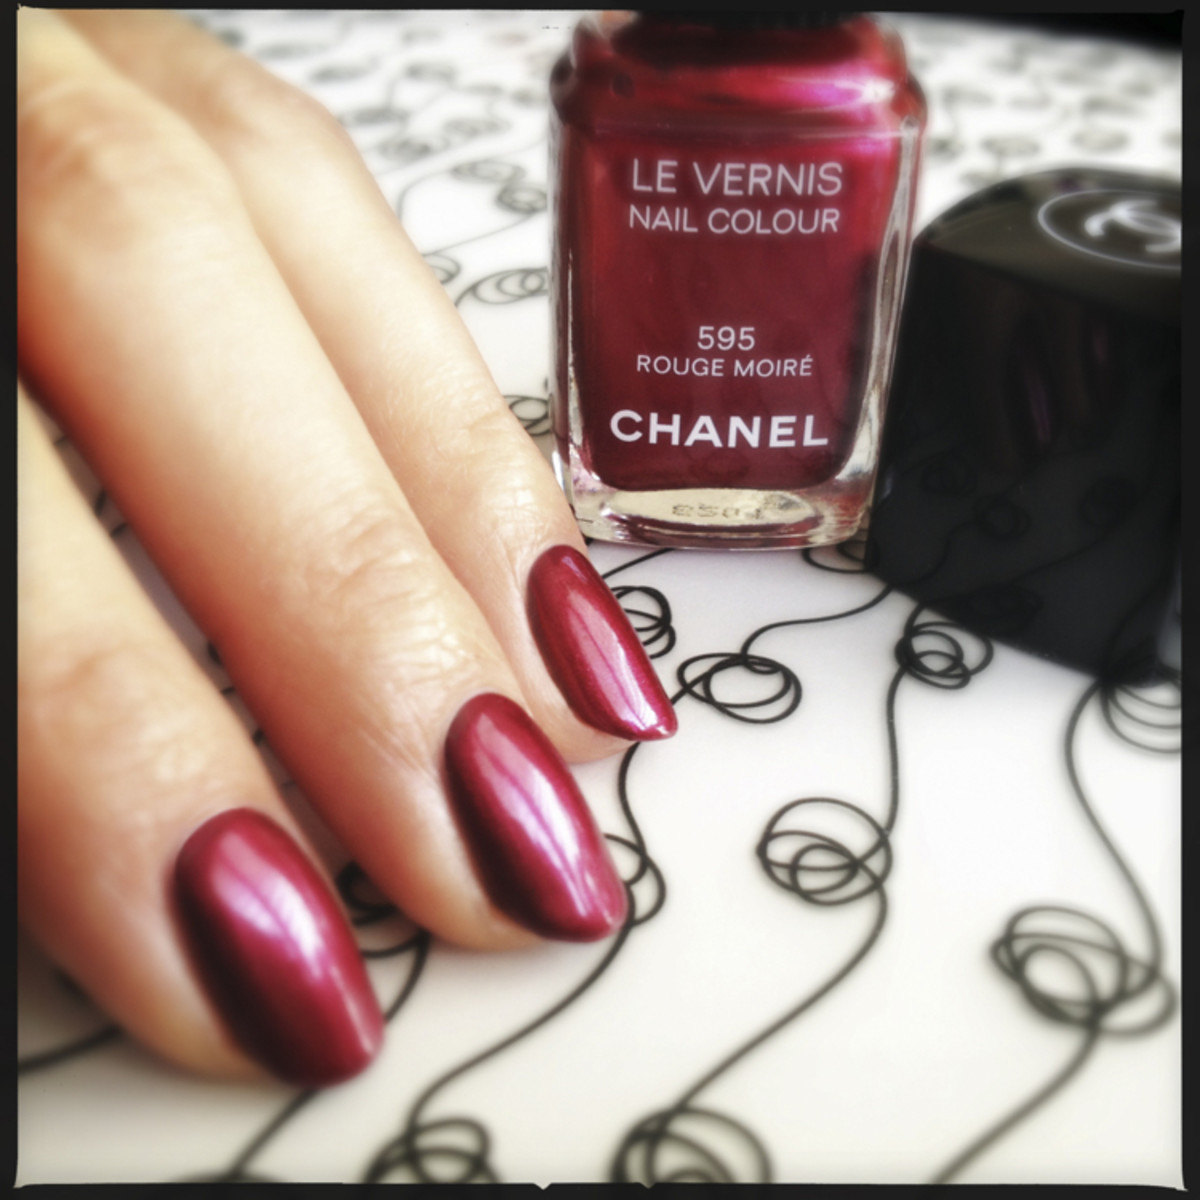 Chanel Rouge Moiré 595